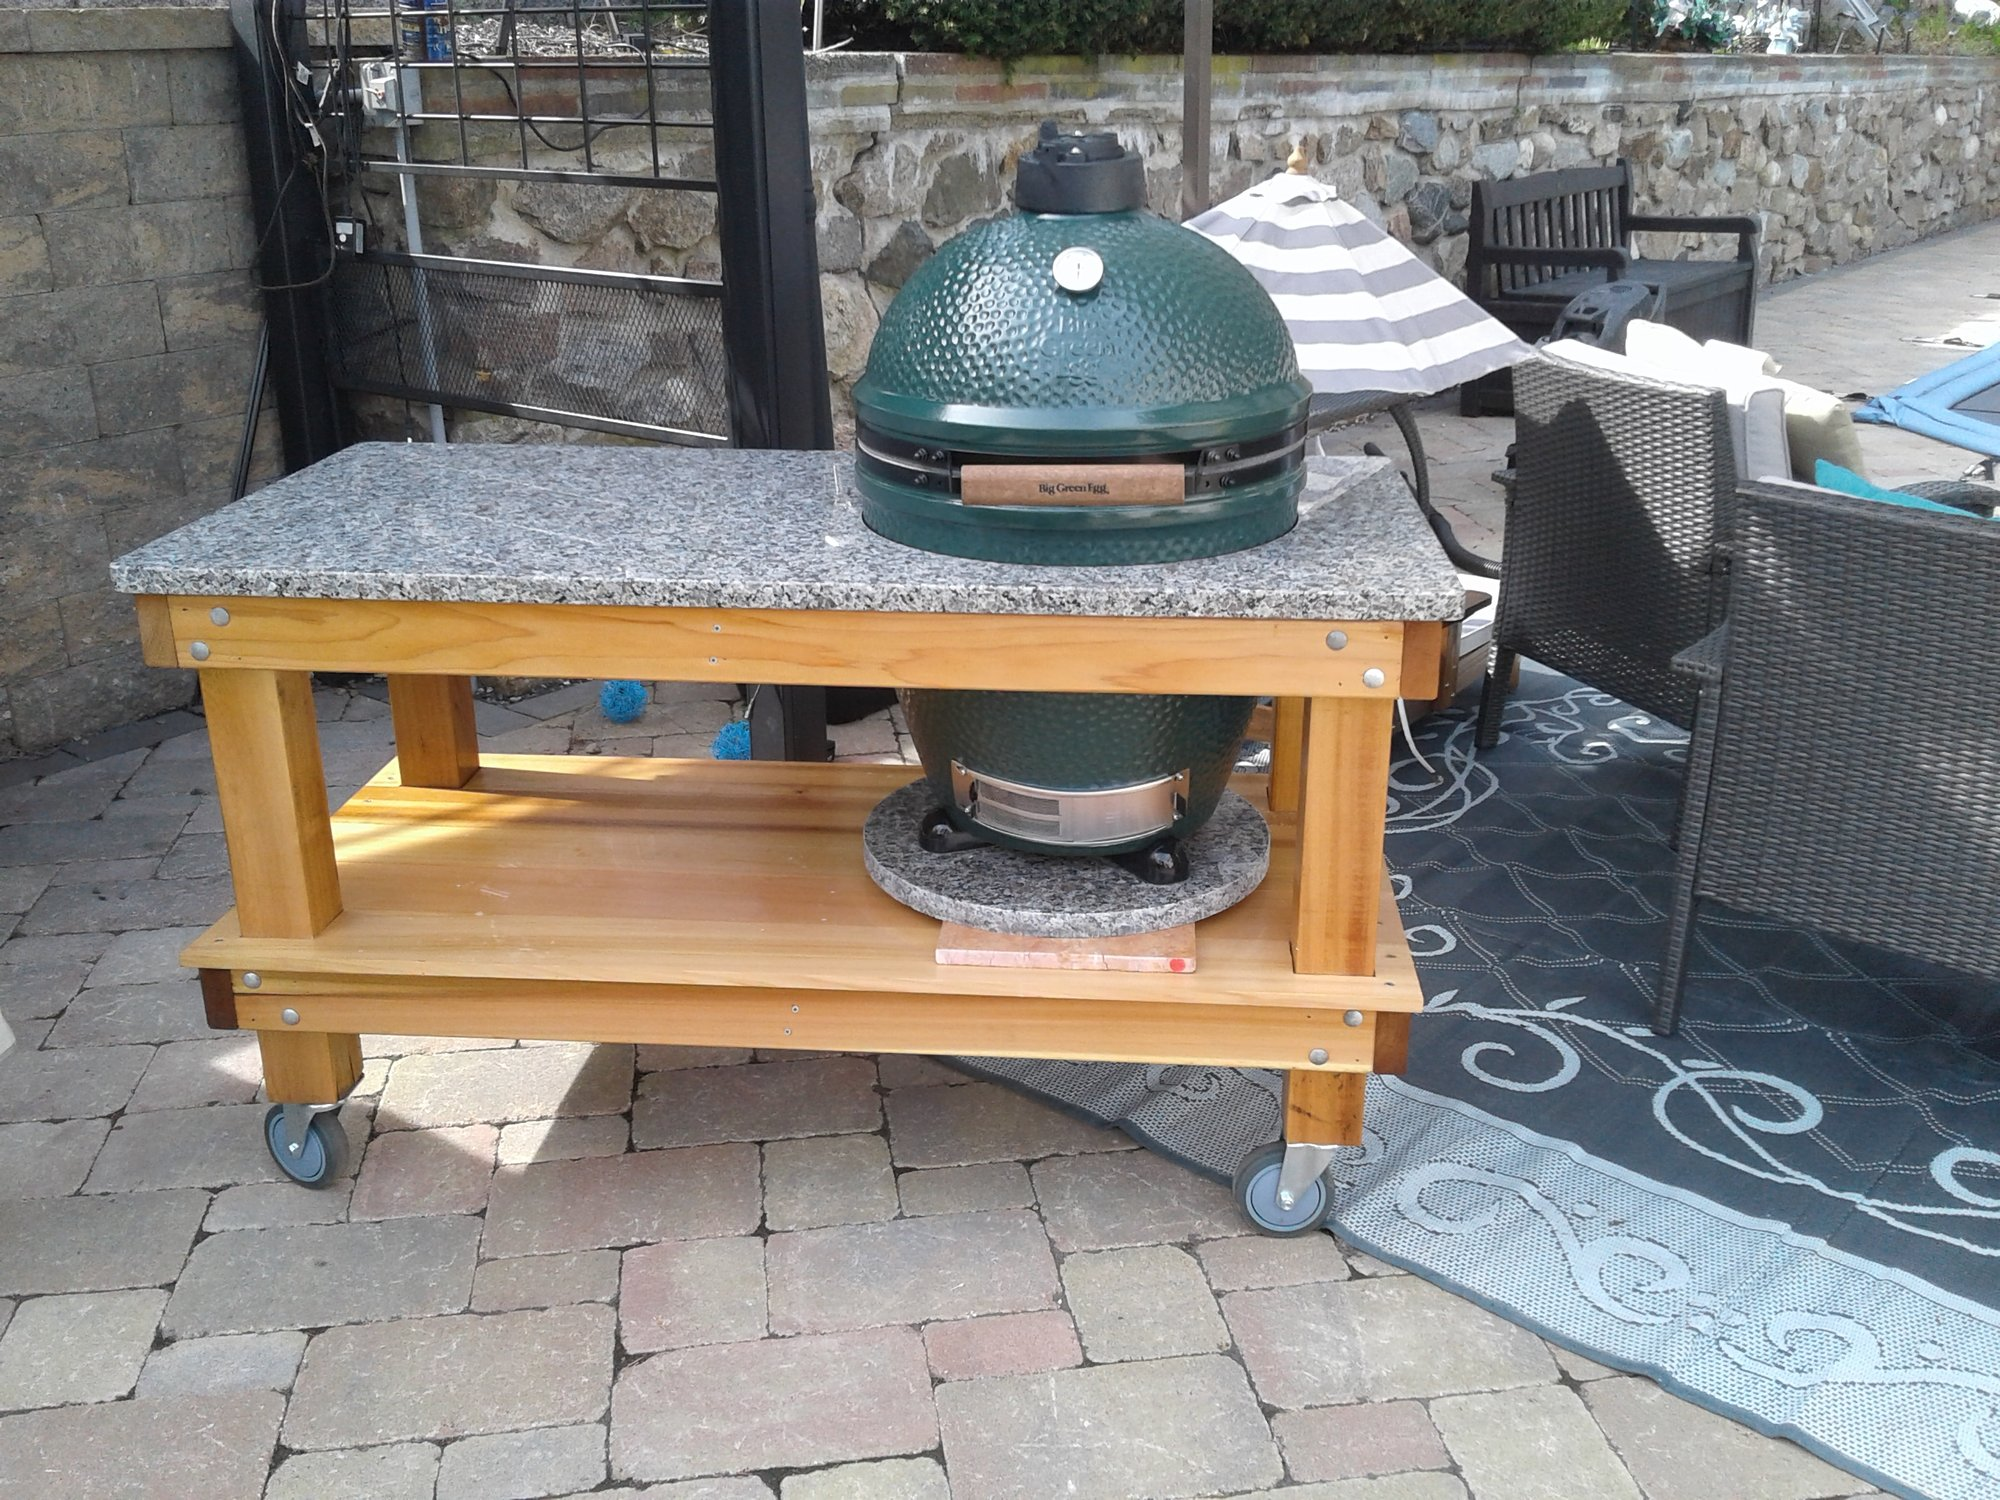 cedar table for xl bge question on egg support